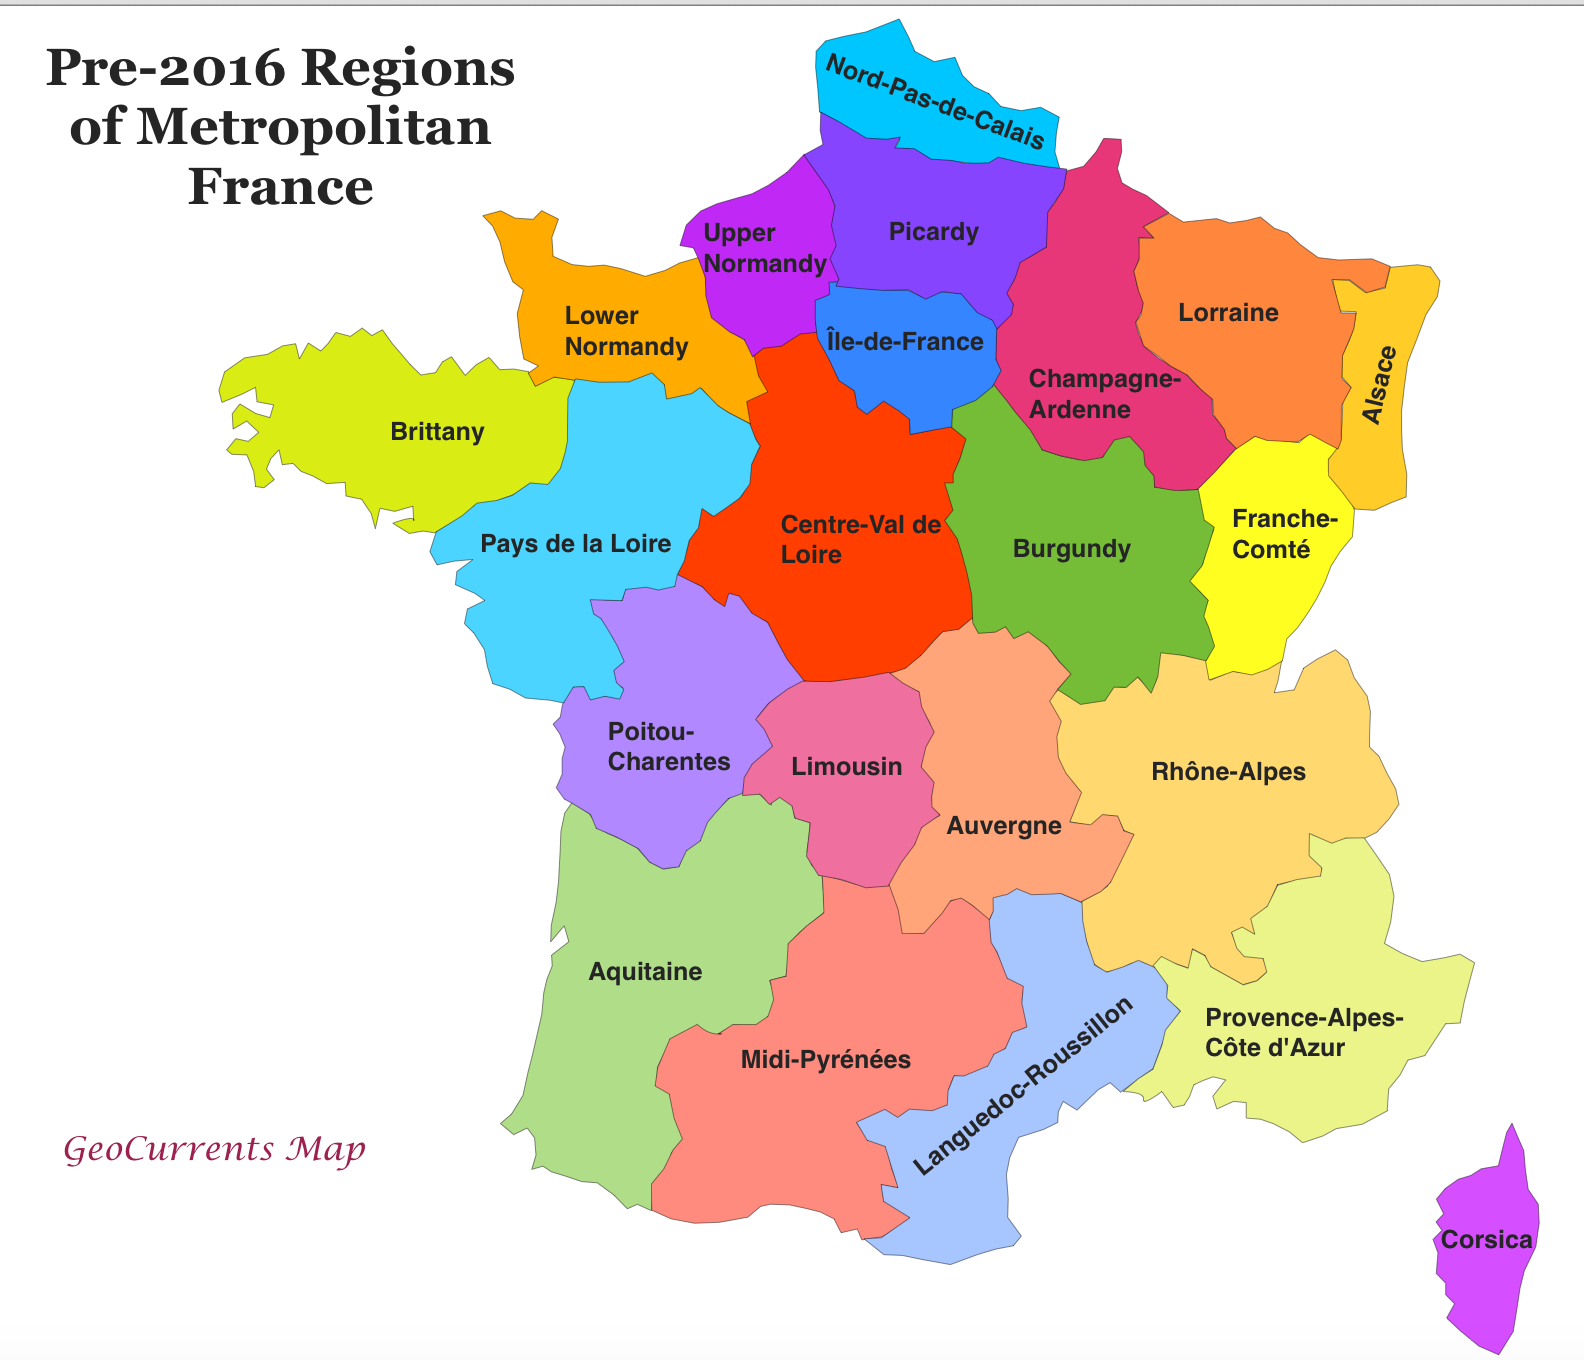 Customizable maps of france and the new french regions geocurrents pre 2016 regions of france map gumiabroncs Choice Image